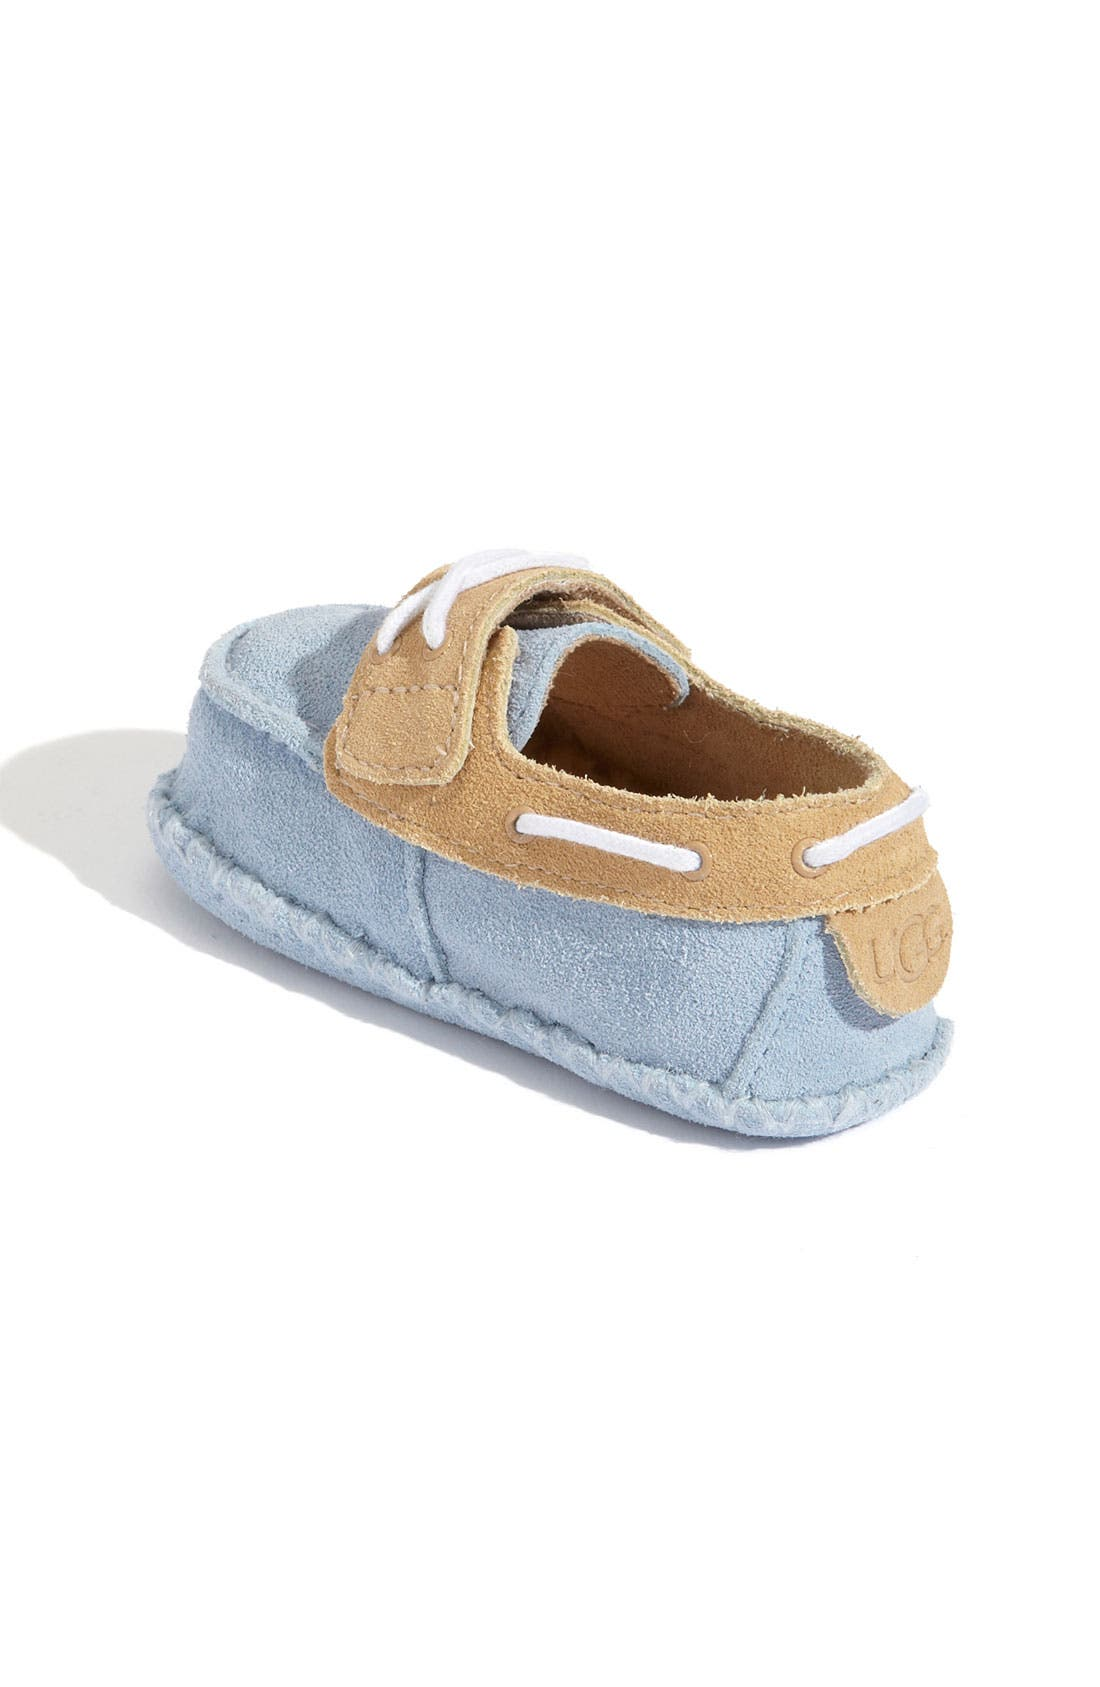 Australia 'Zach' Slip-On,                             Alternate thumbnail 2, color,                             Blue/ Sand